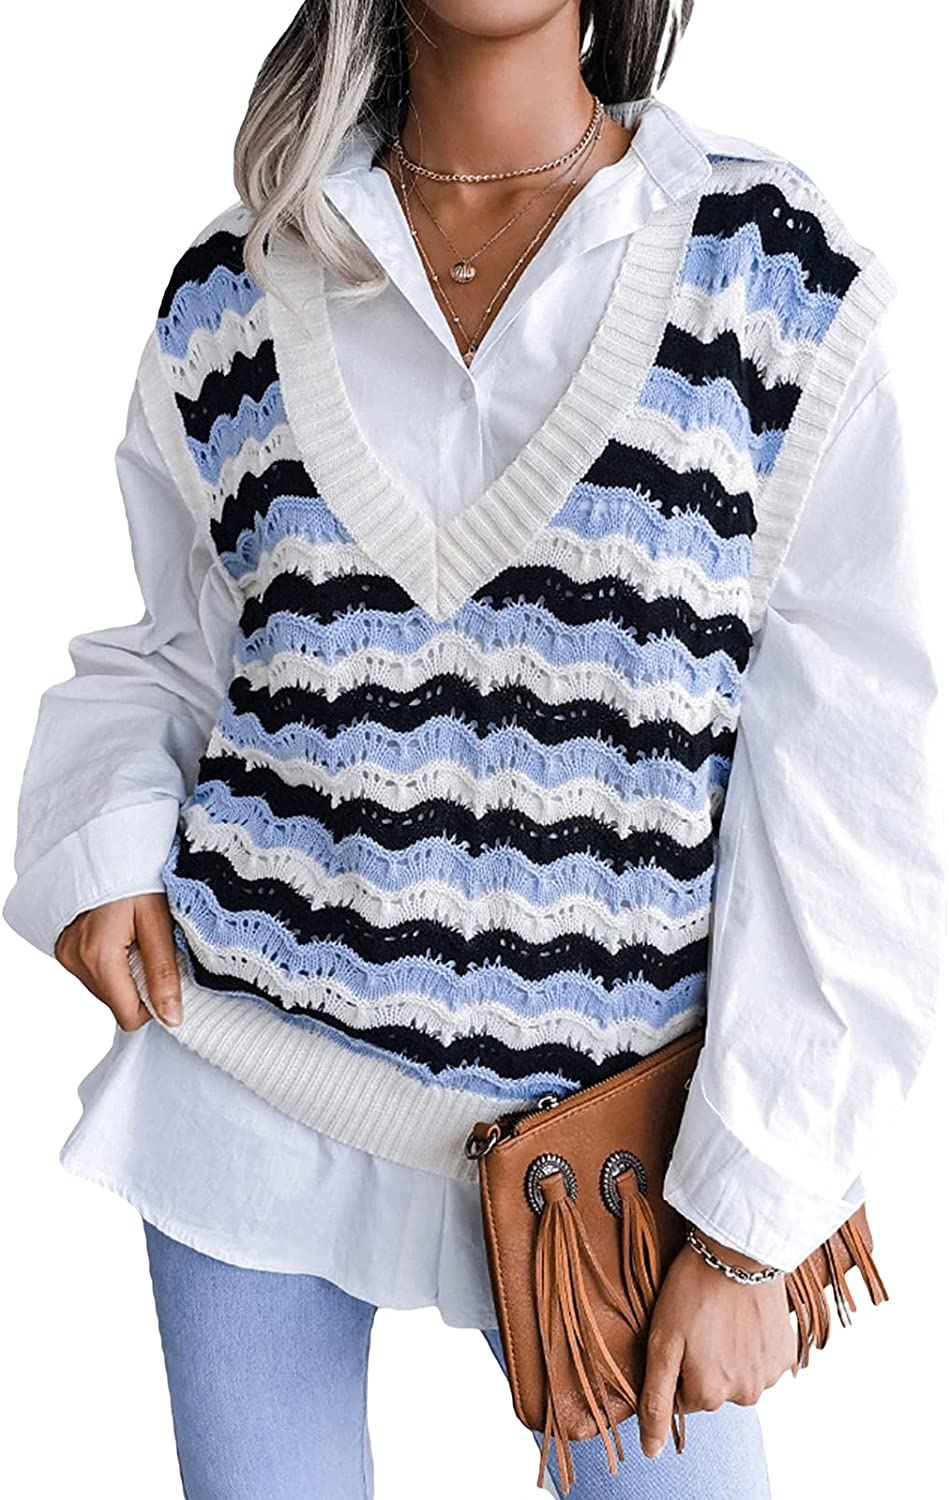 Sweater Vest for Women Oversized V Neck Sleeveless Tank Top Argyle Plaid Cable Knit Tops Preppy Style Y2K Streetwear